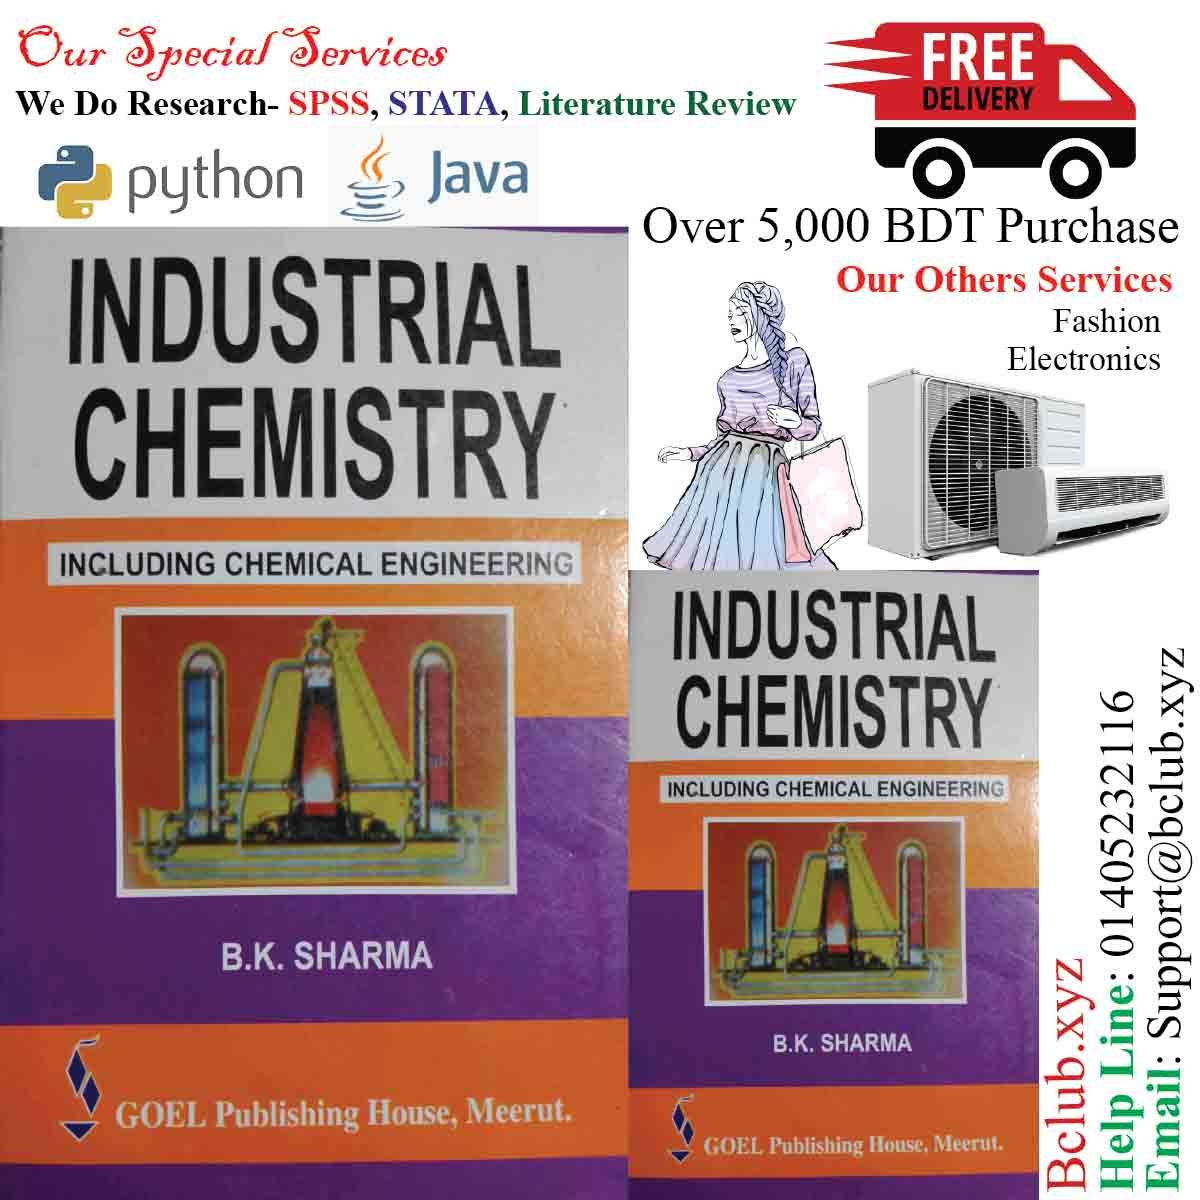 Industrial Chemistry (including Chemical Engineering) by B.K. Sharma